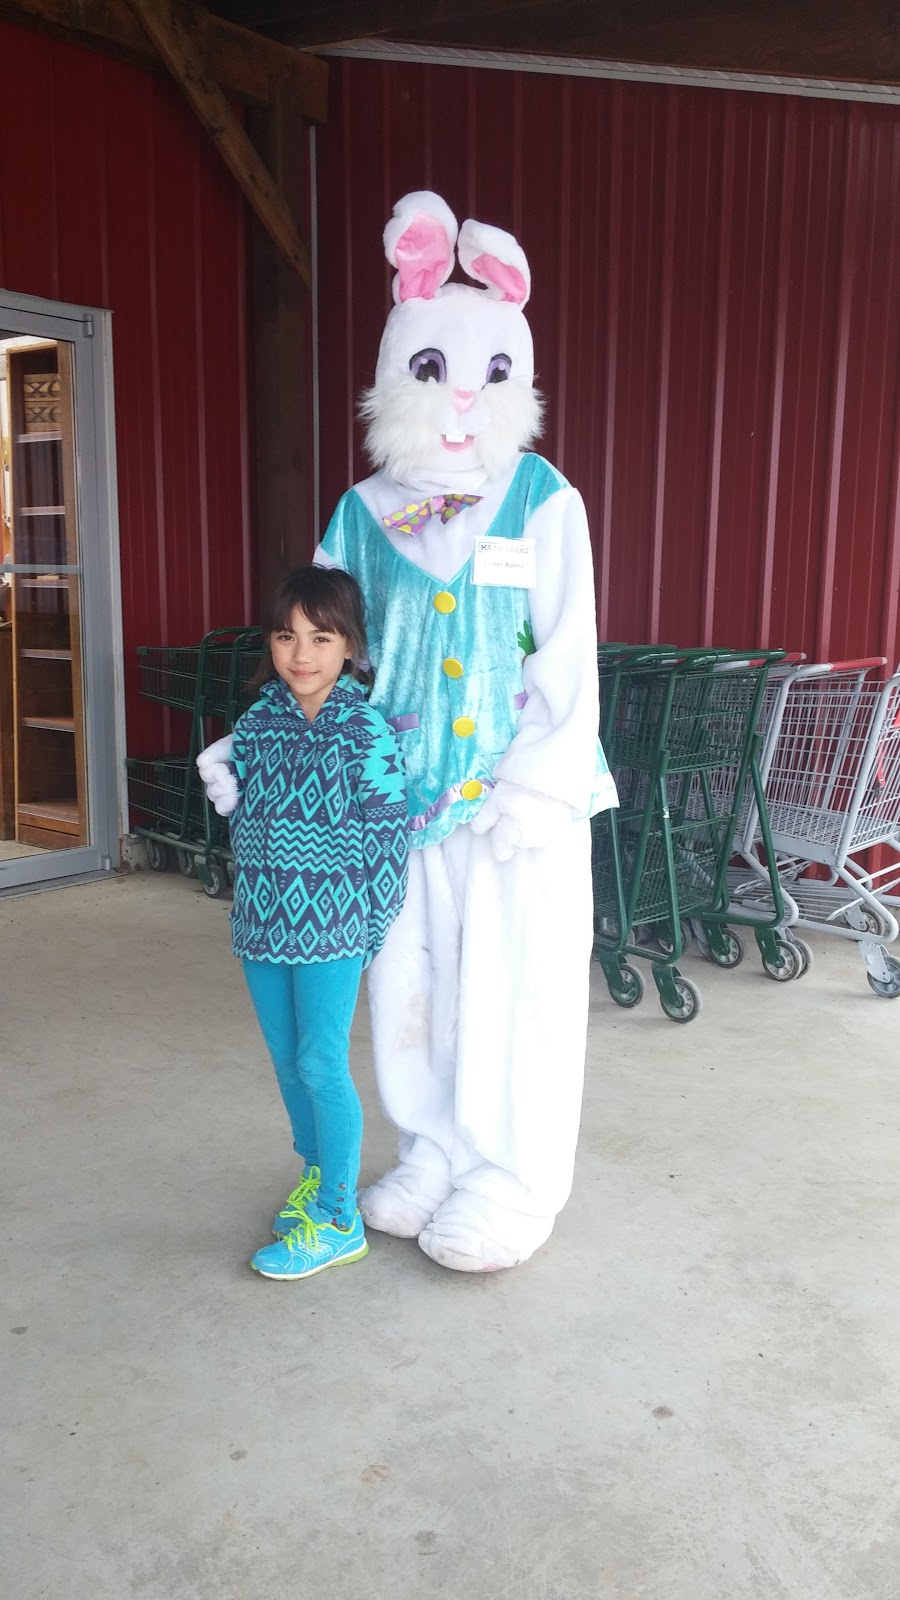 My eldest daughter picture with the Easter bunny lady!Maan farm is really great, though I paid the entrance fee for my two girls about $18 something I believe but it sure my kids had so much fun! My son were free because he was under 3  year old. The small zoo they have on the farm is awesome!